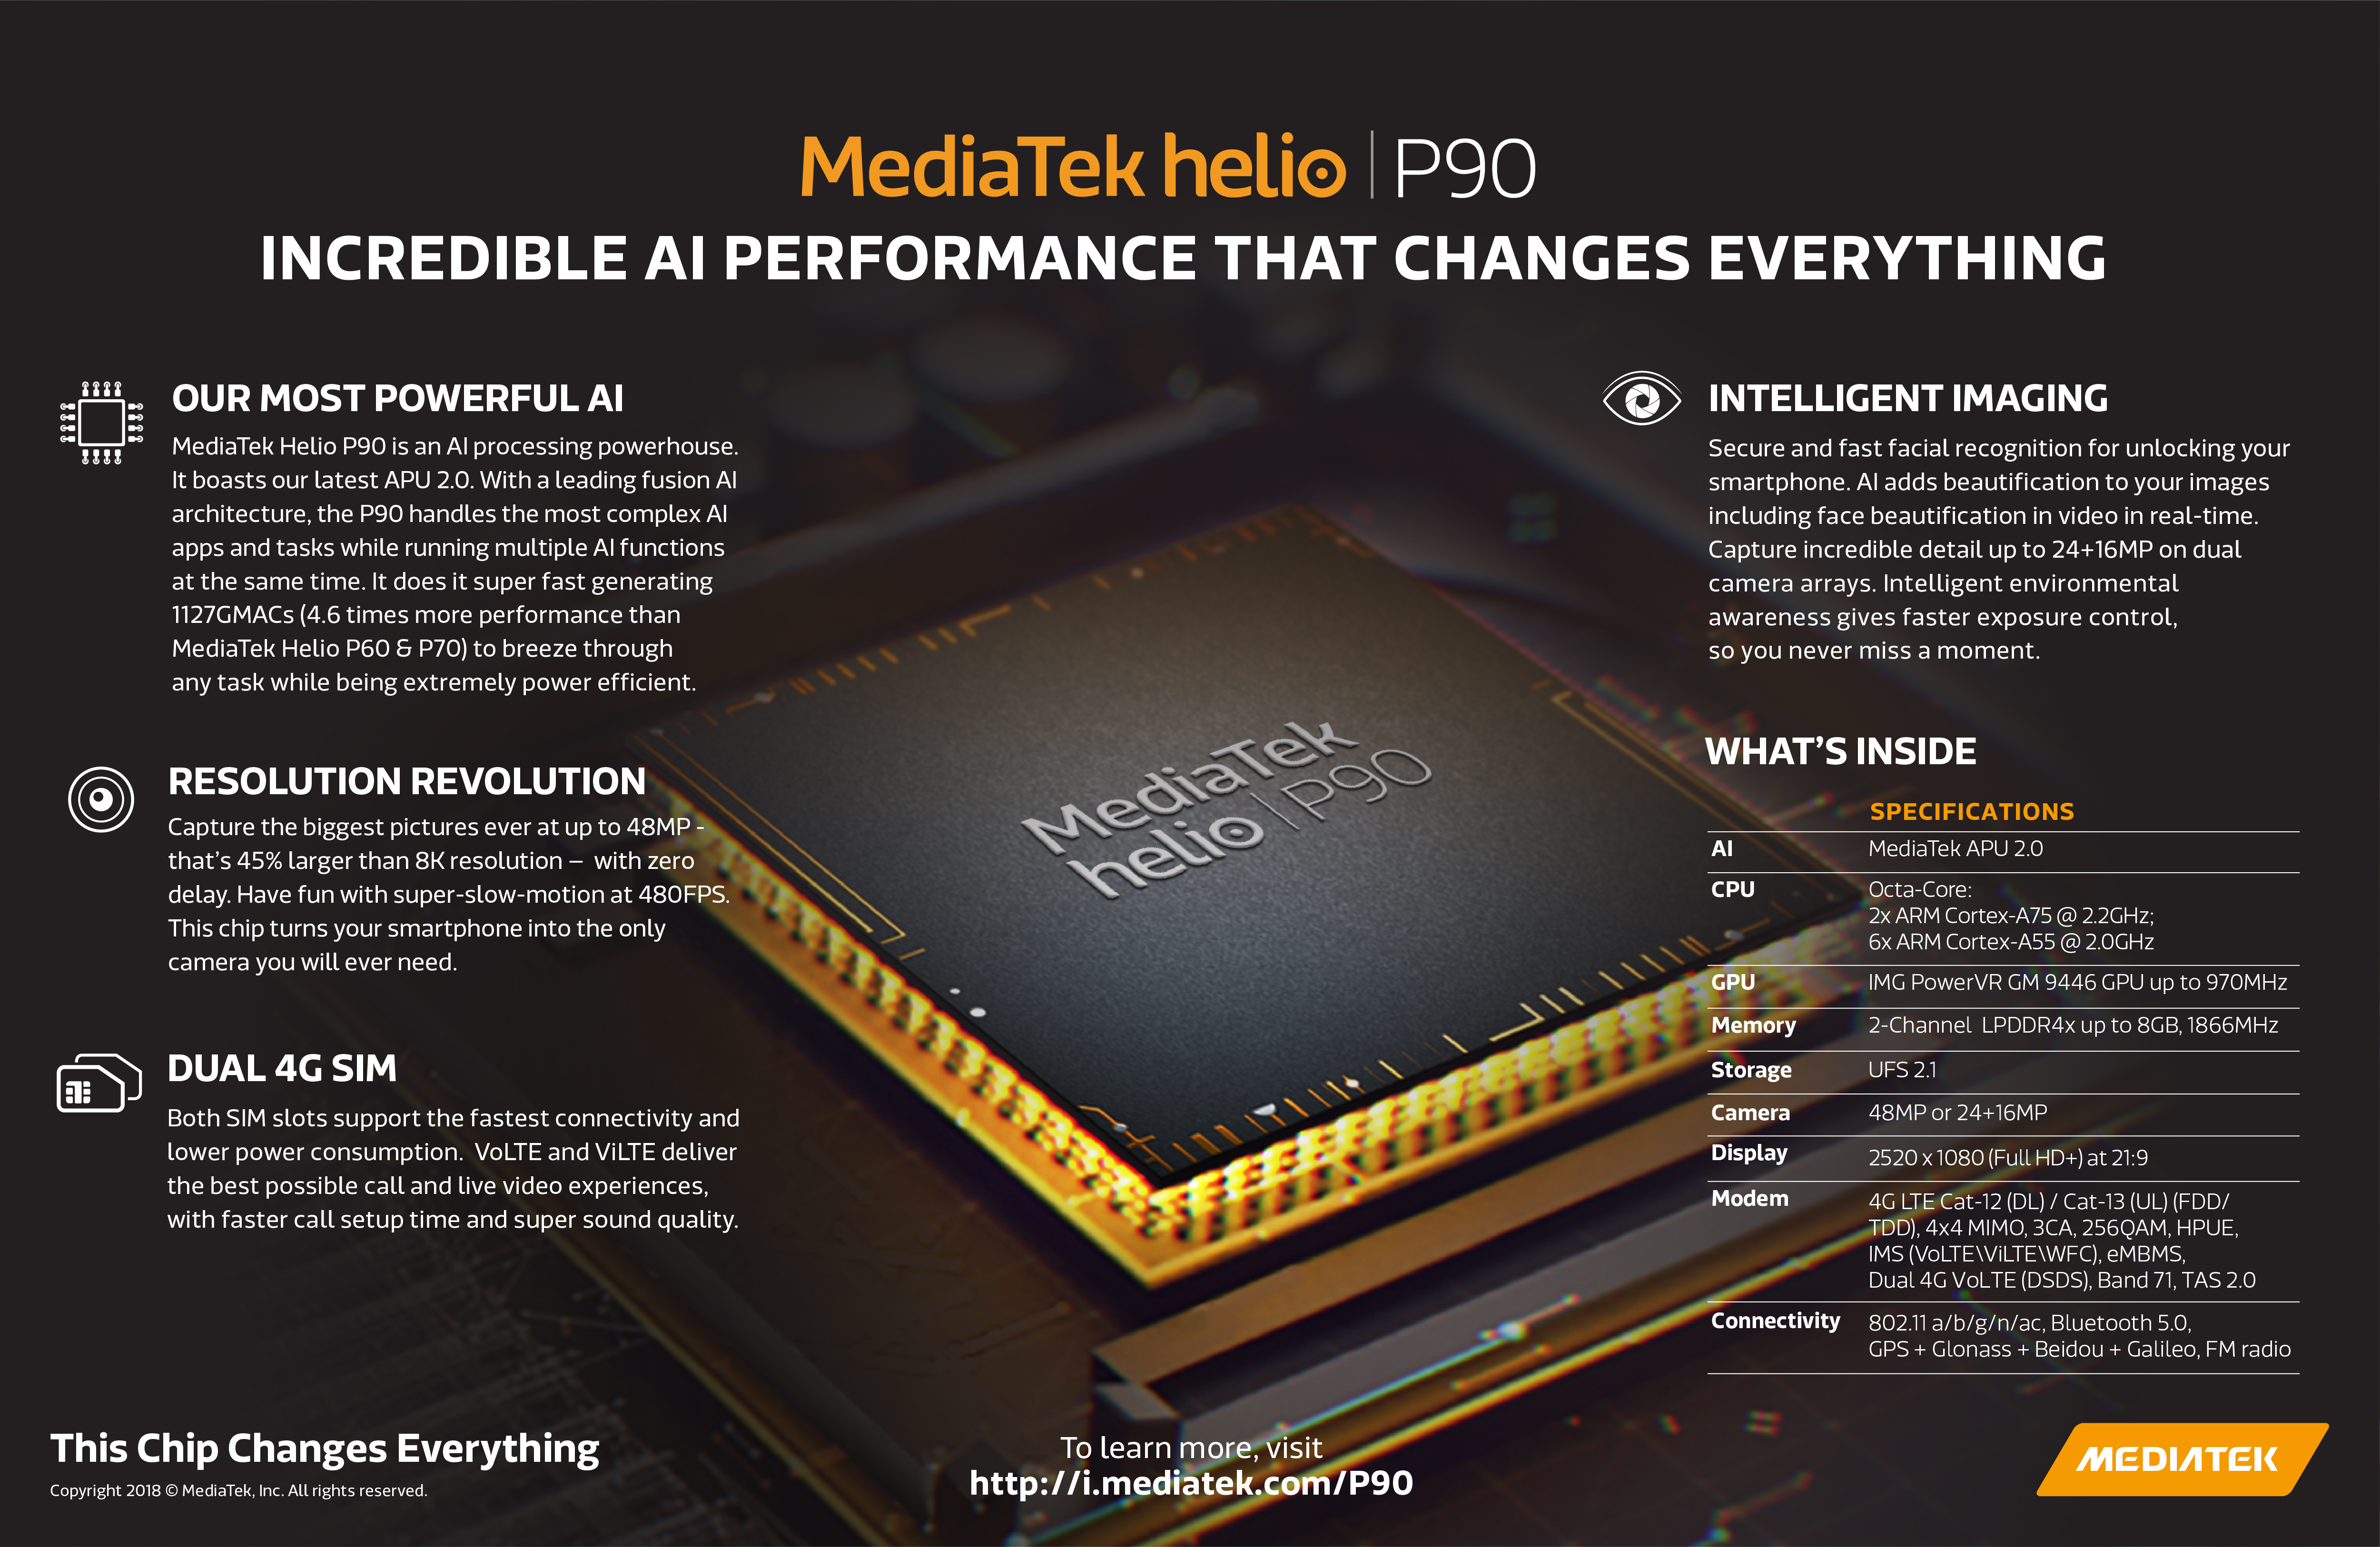 MediaTek Helio P90 to come with ARCore, Google Lens support